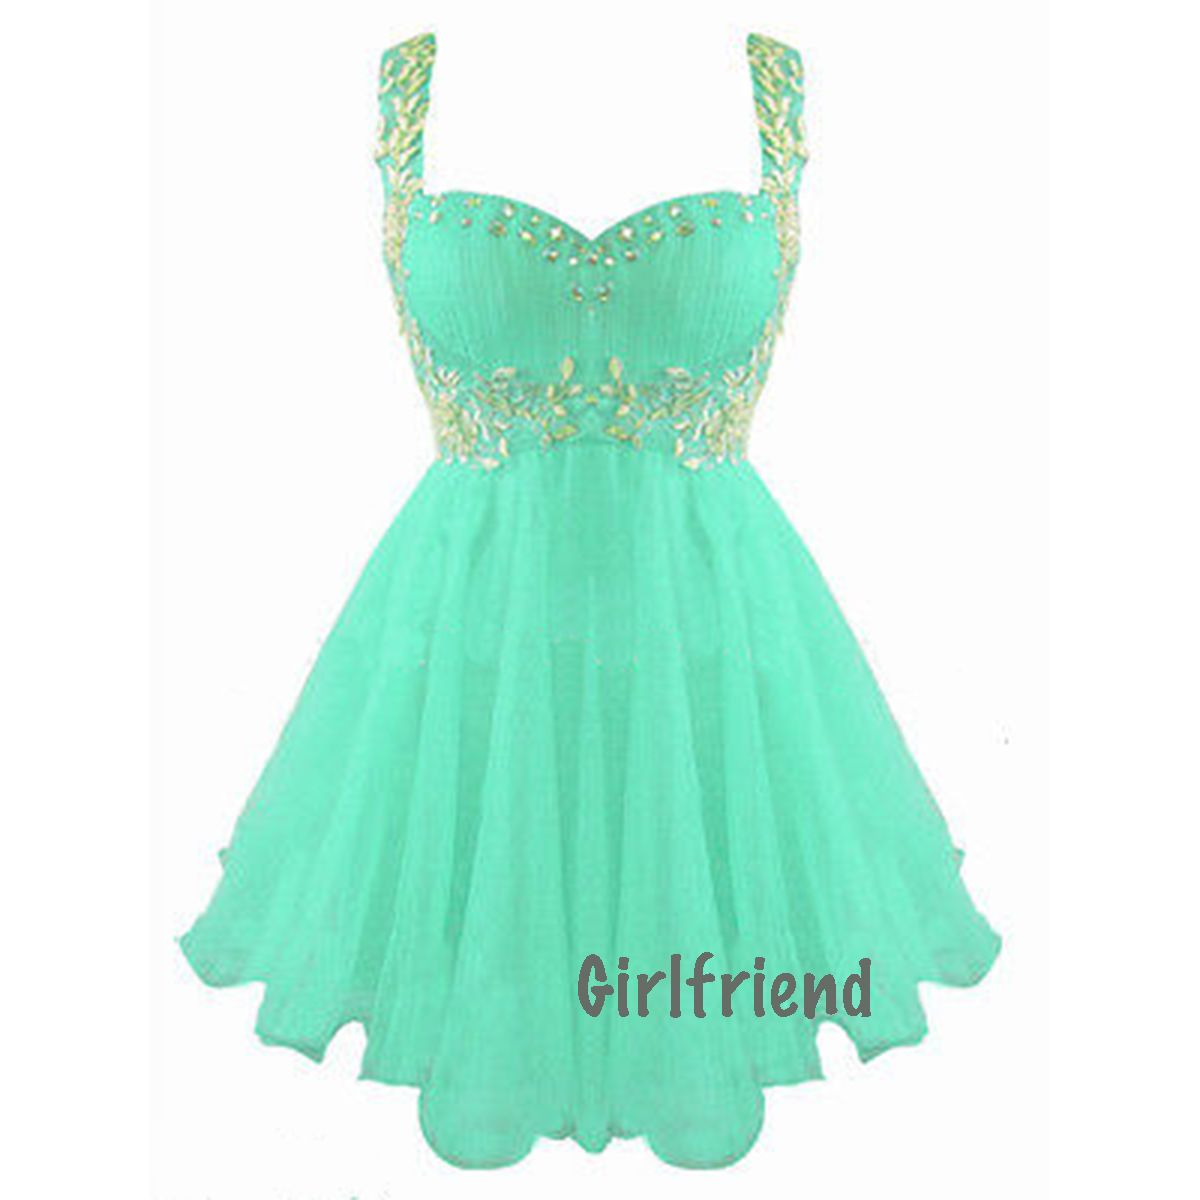 Cute Short Prom Dresses 2014 | prom-dress-cute-green-sleeveless ...